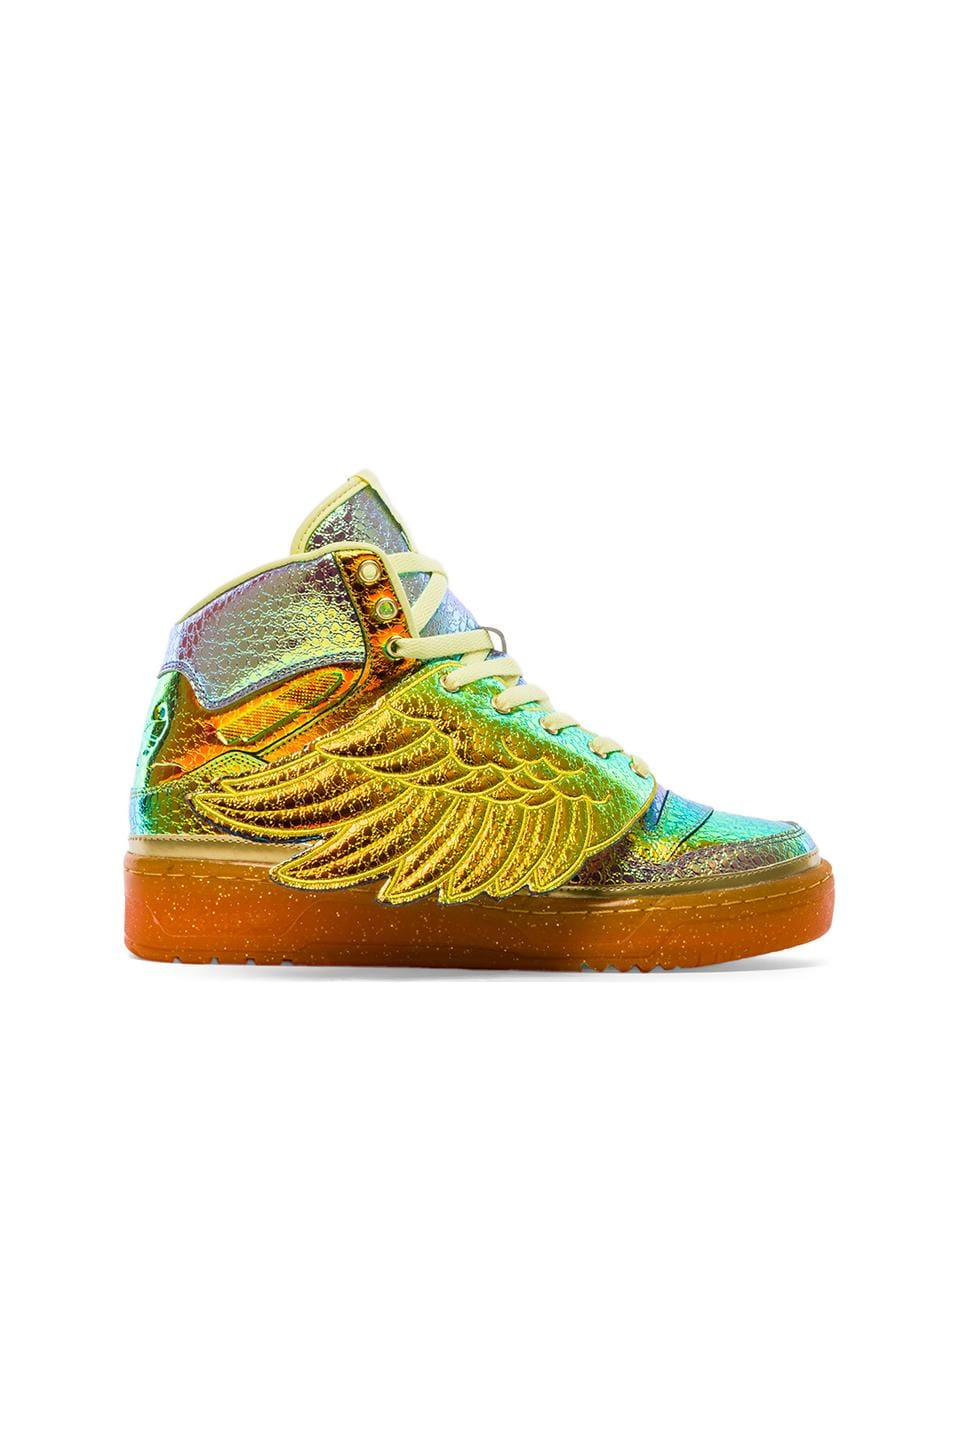 adidas Originals by Jeremy Scott Foil Wing in Metallic Gold & Foil